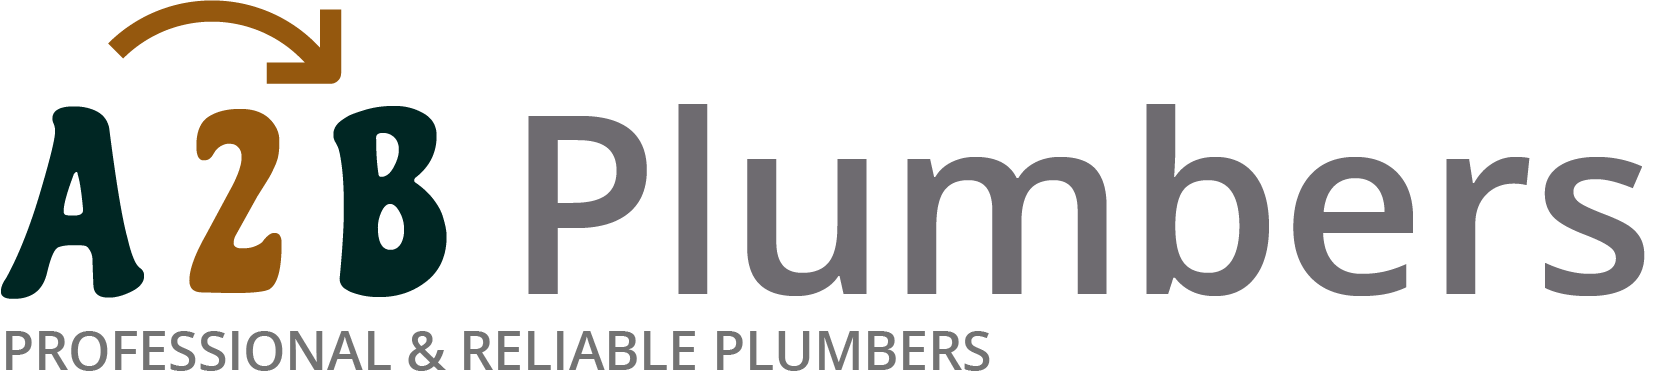 If you need a boiler installed, a radiator repaired or a leaking tap fixed, call us now - we provide services for properties in Great Dunmow and the local area.